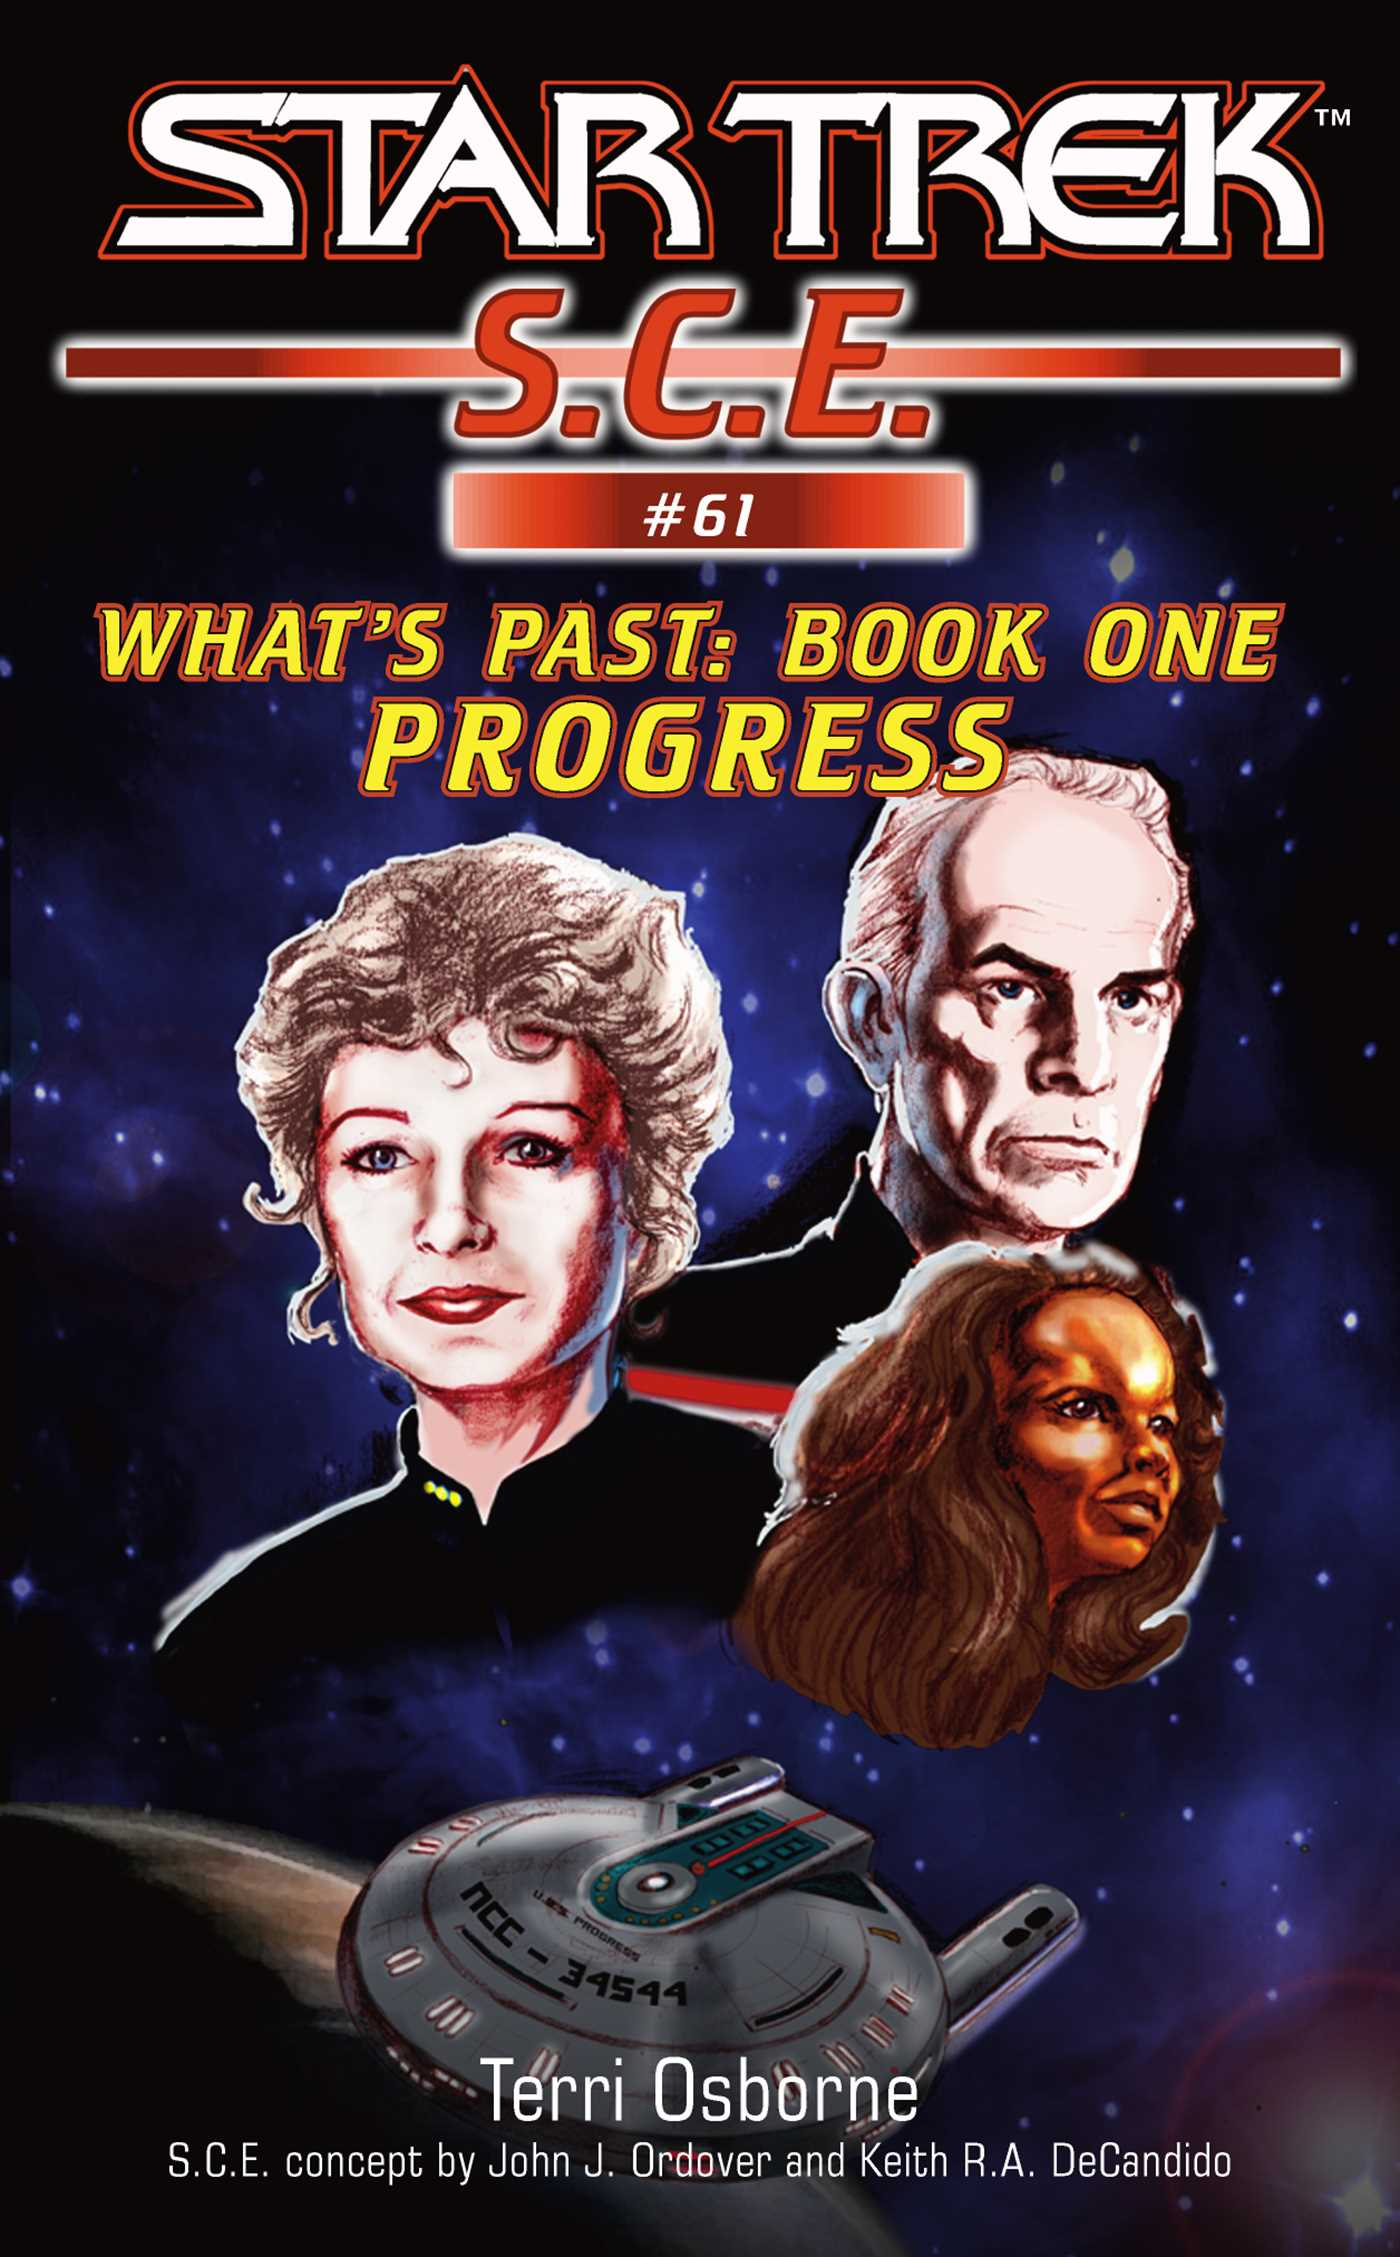 Star trek progress 9781416520450 hr